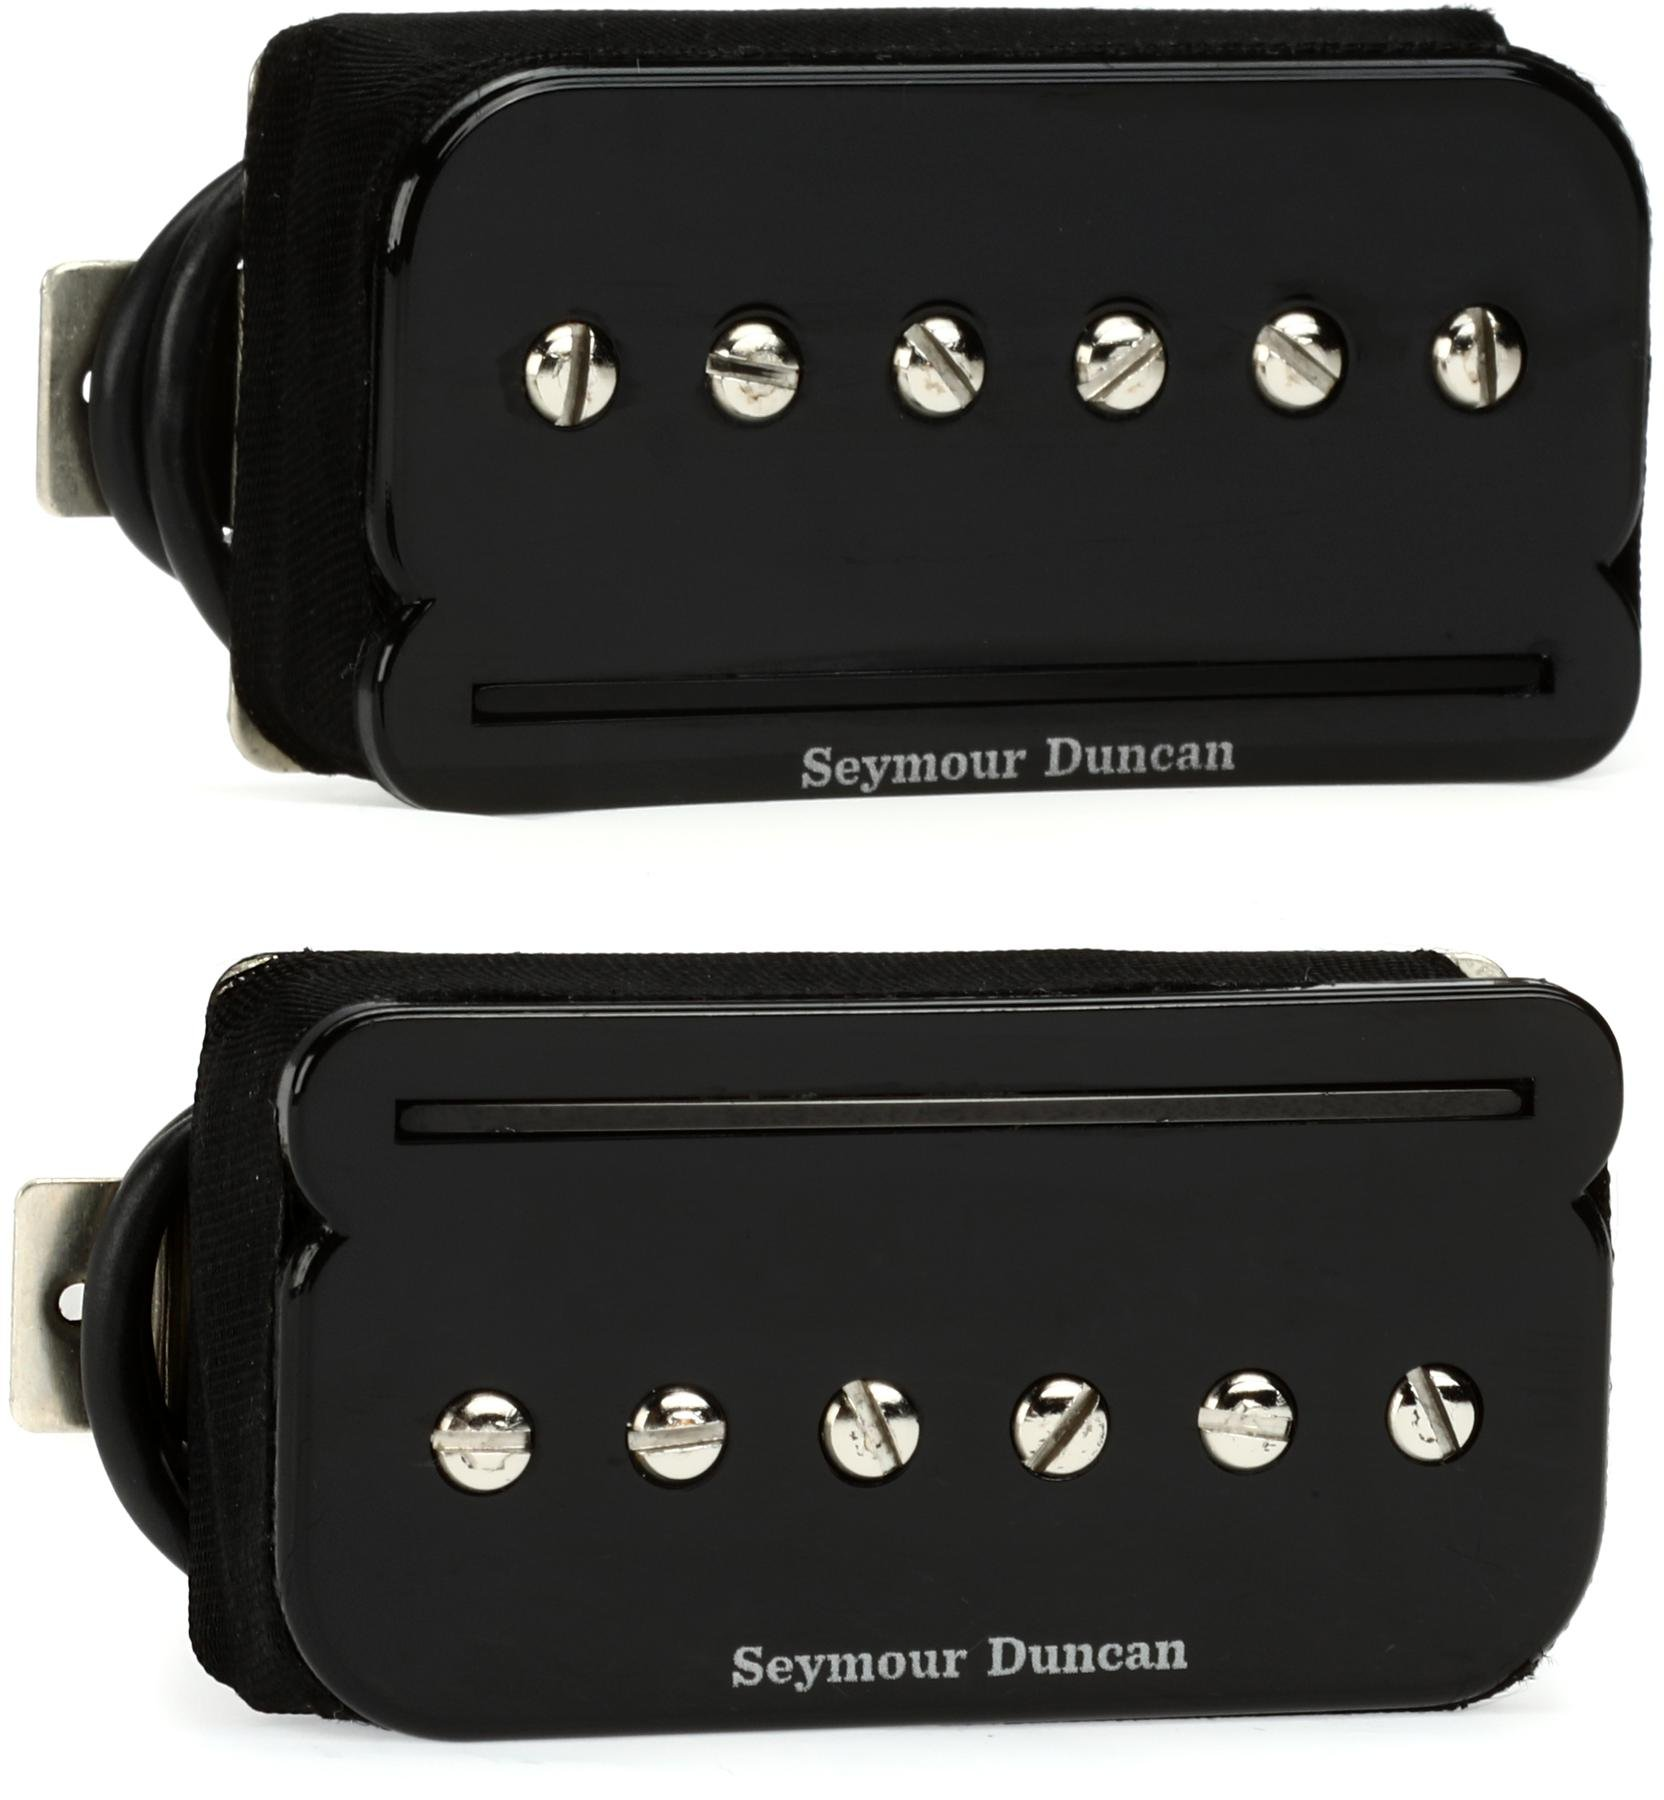 Seymour Duncan Shpr 1s P Rails Pickup Set Sweetwater Whole Lotta Humbucker Wiring Diagram Image 1